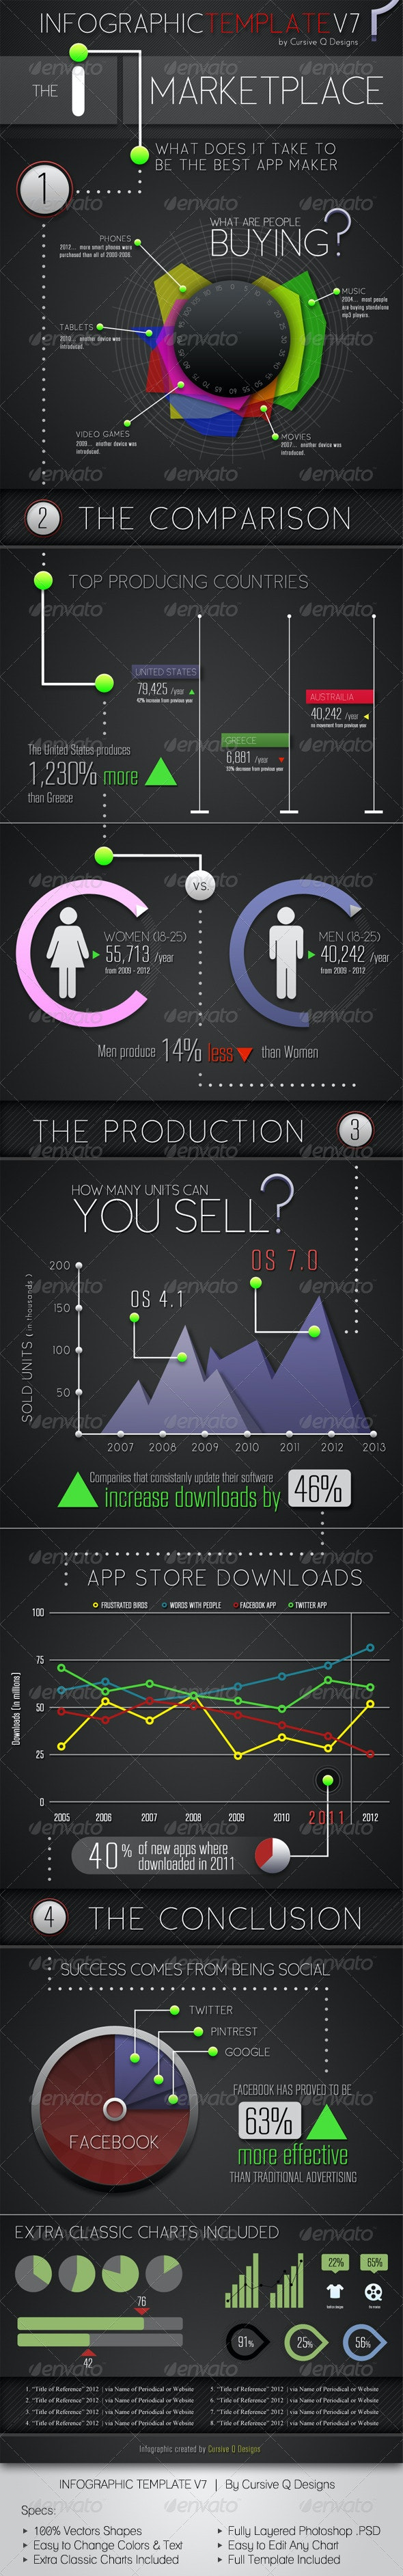 Infographic Template and Charts V7 - Infographics